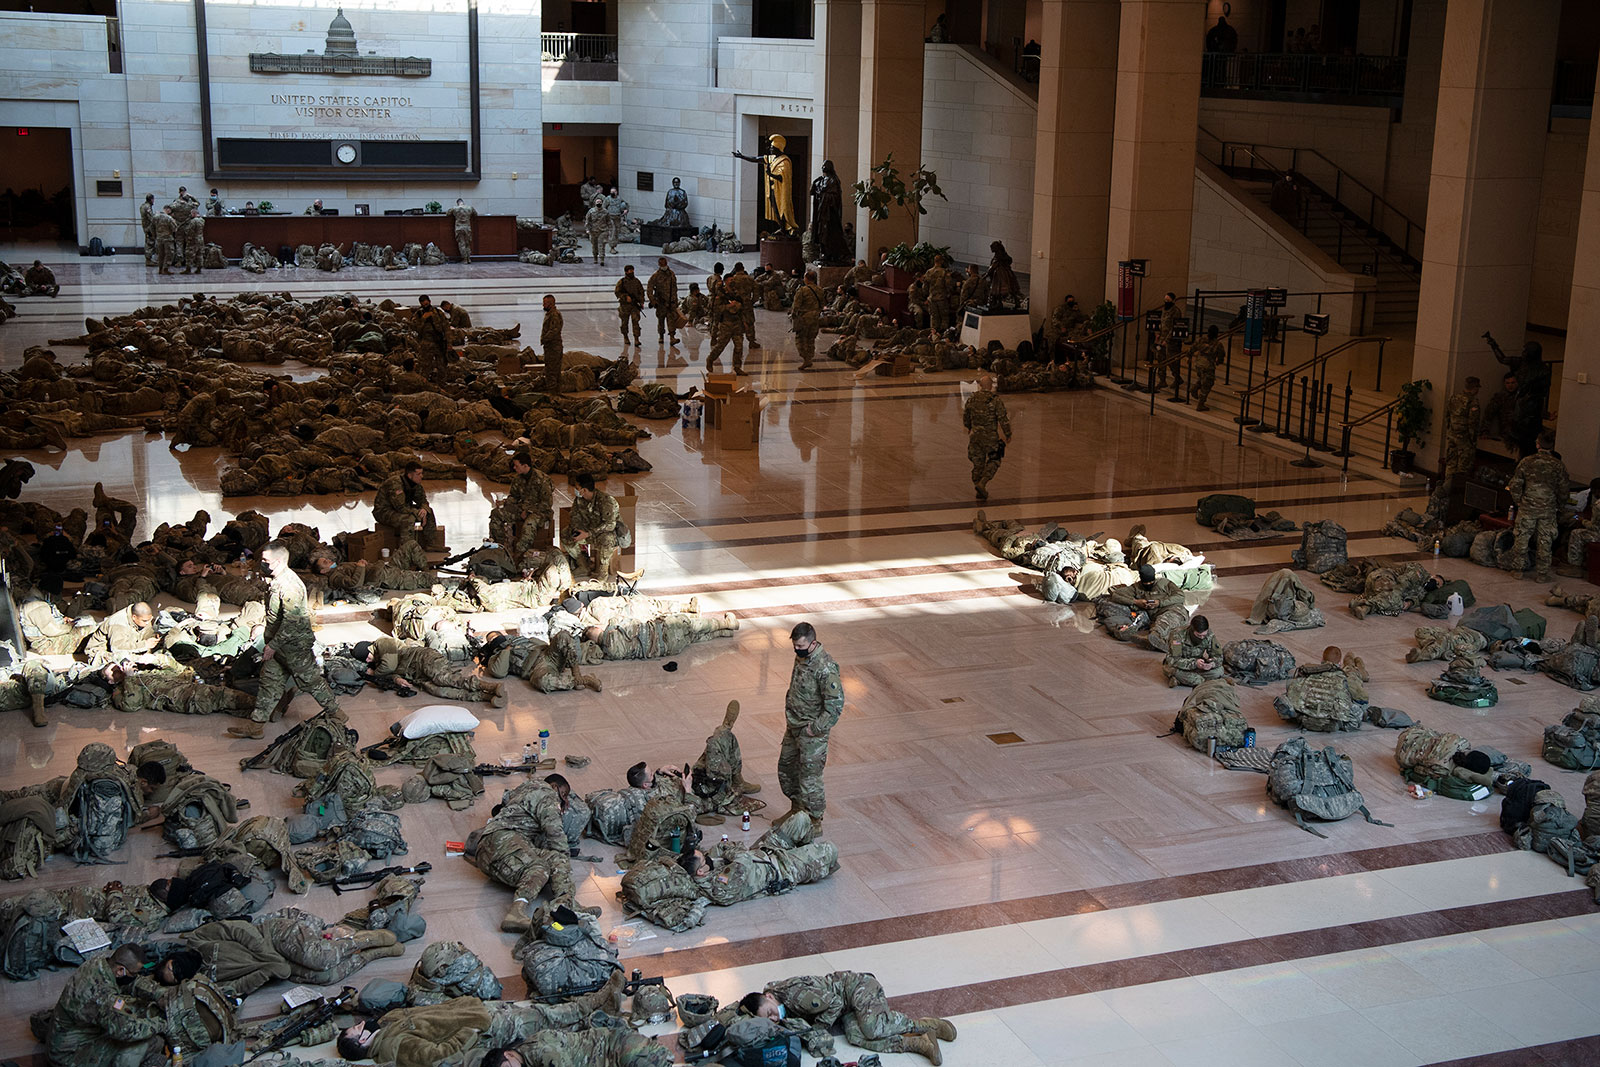 Members of the National Guard rest in the Capitol Visitor Center on January 13.